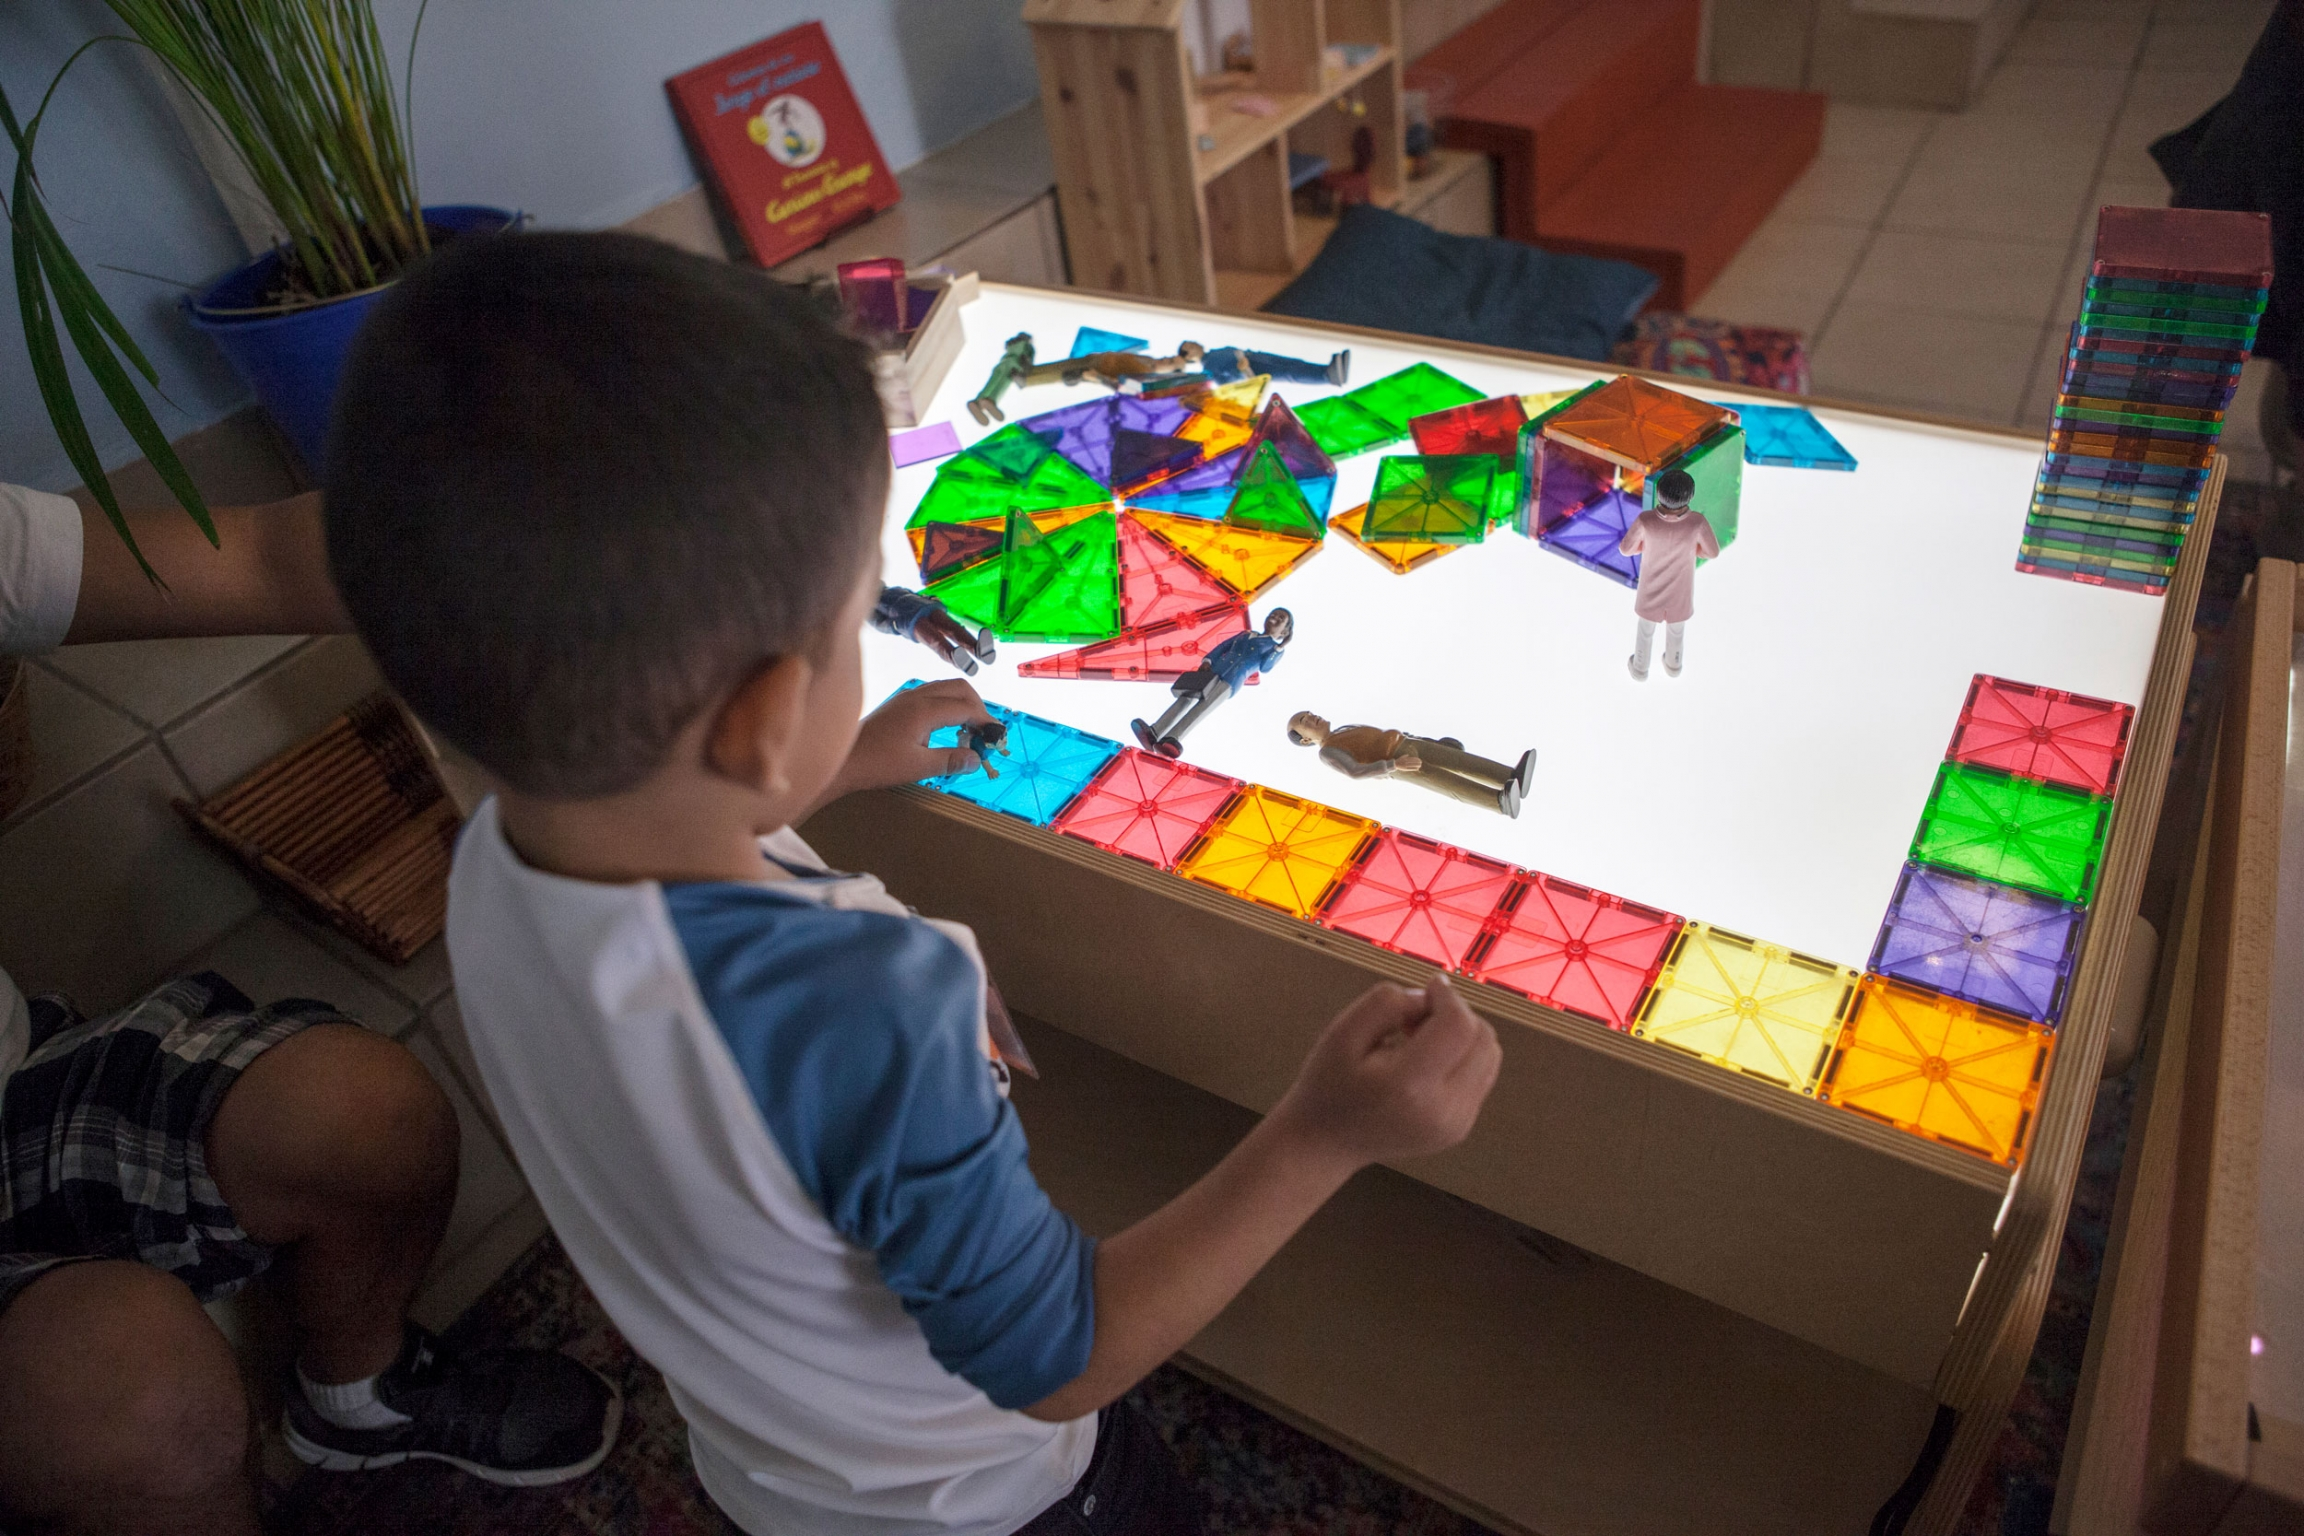 Three-year-old Kevin is shown playing at a table with color-squares illuminated by a table light.